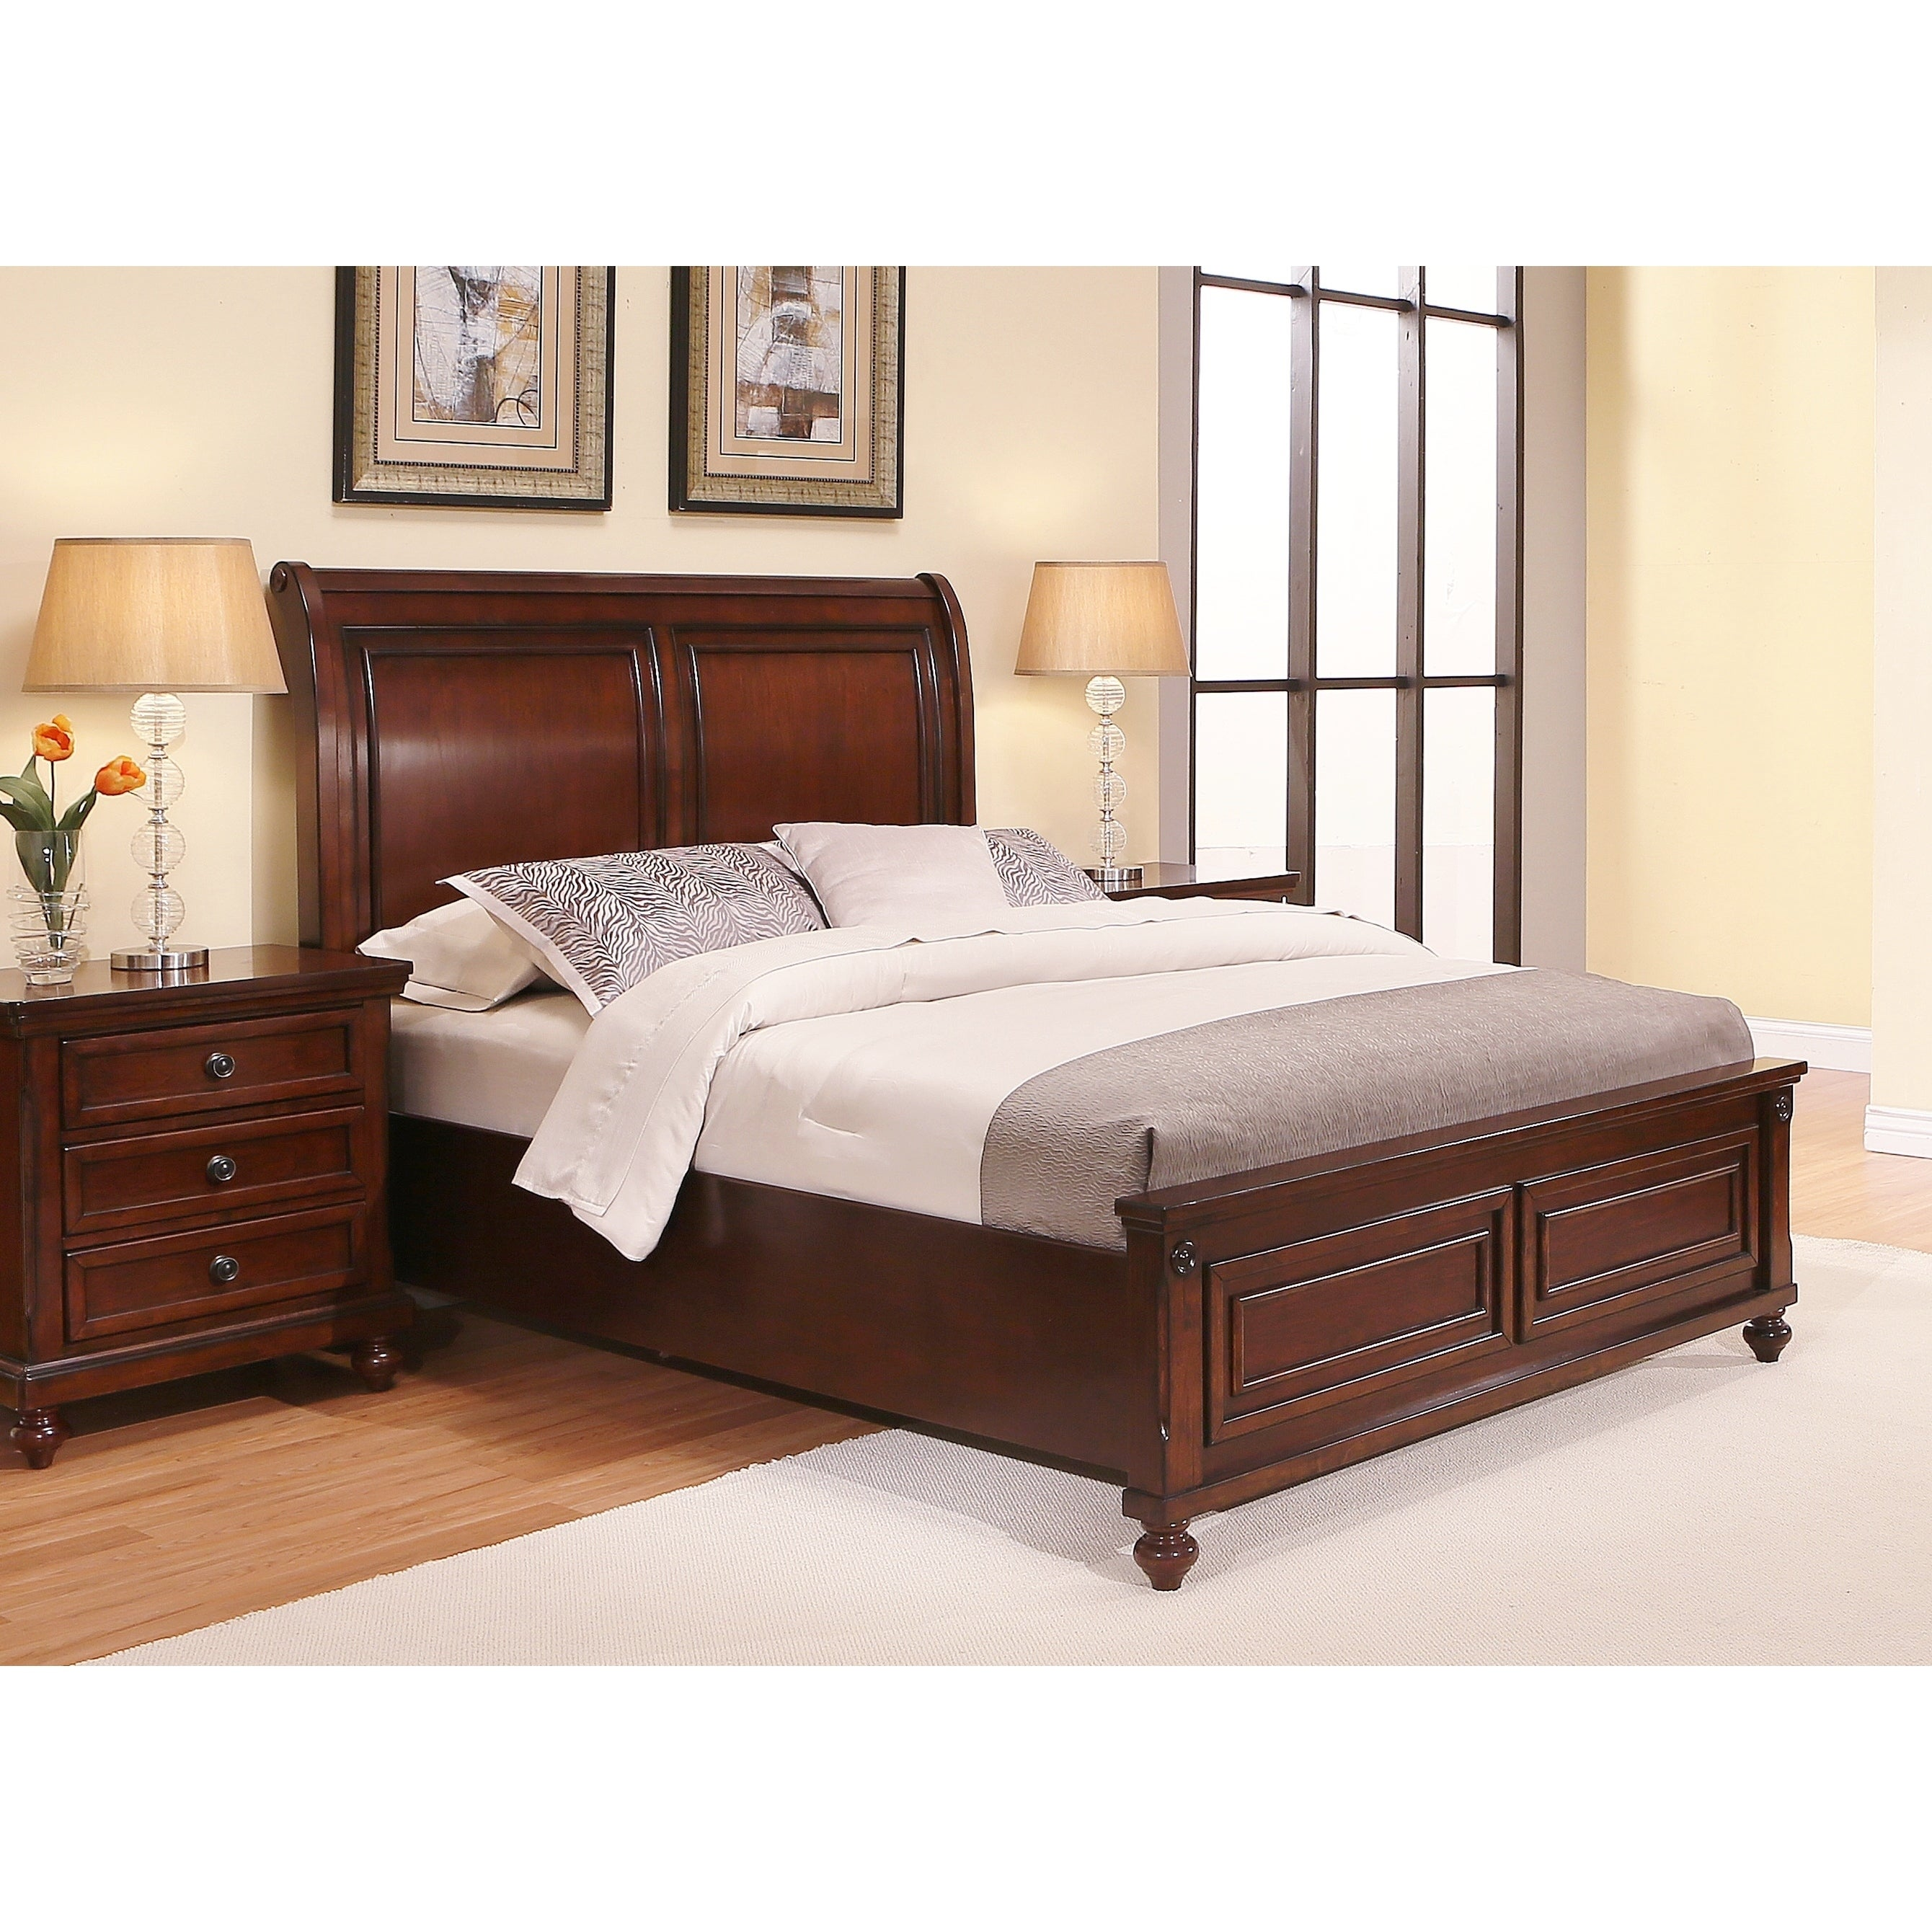 Abbyson Caprice Cherry Wood Bed (Cherry), Brown, Size Queen